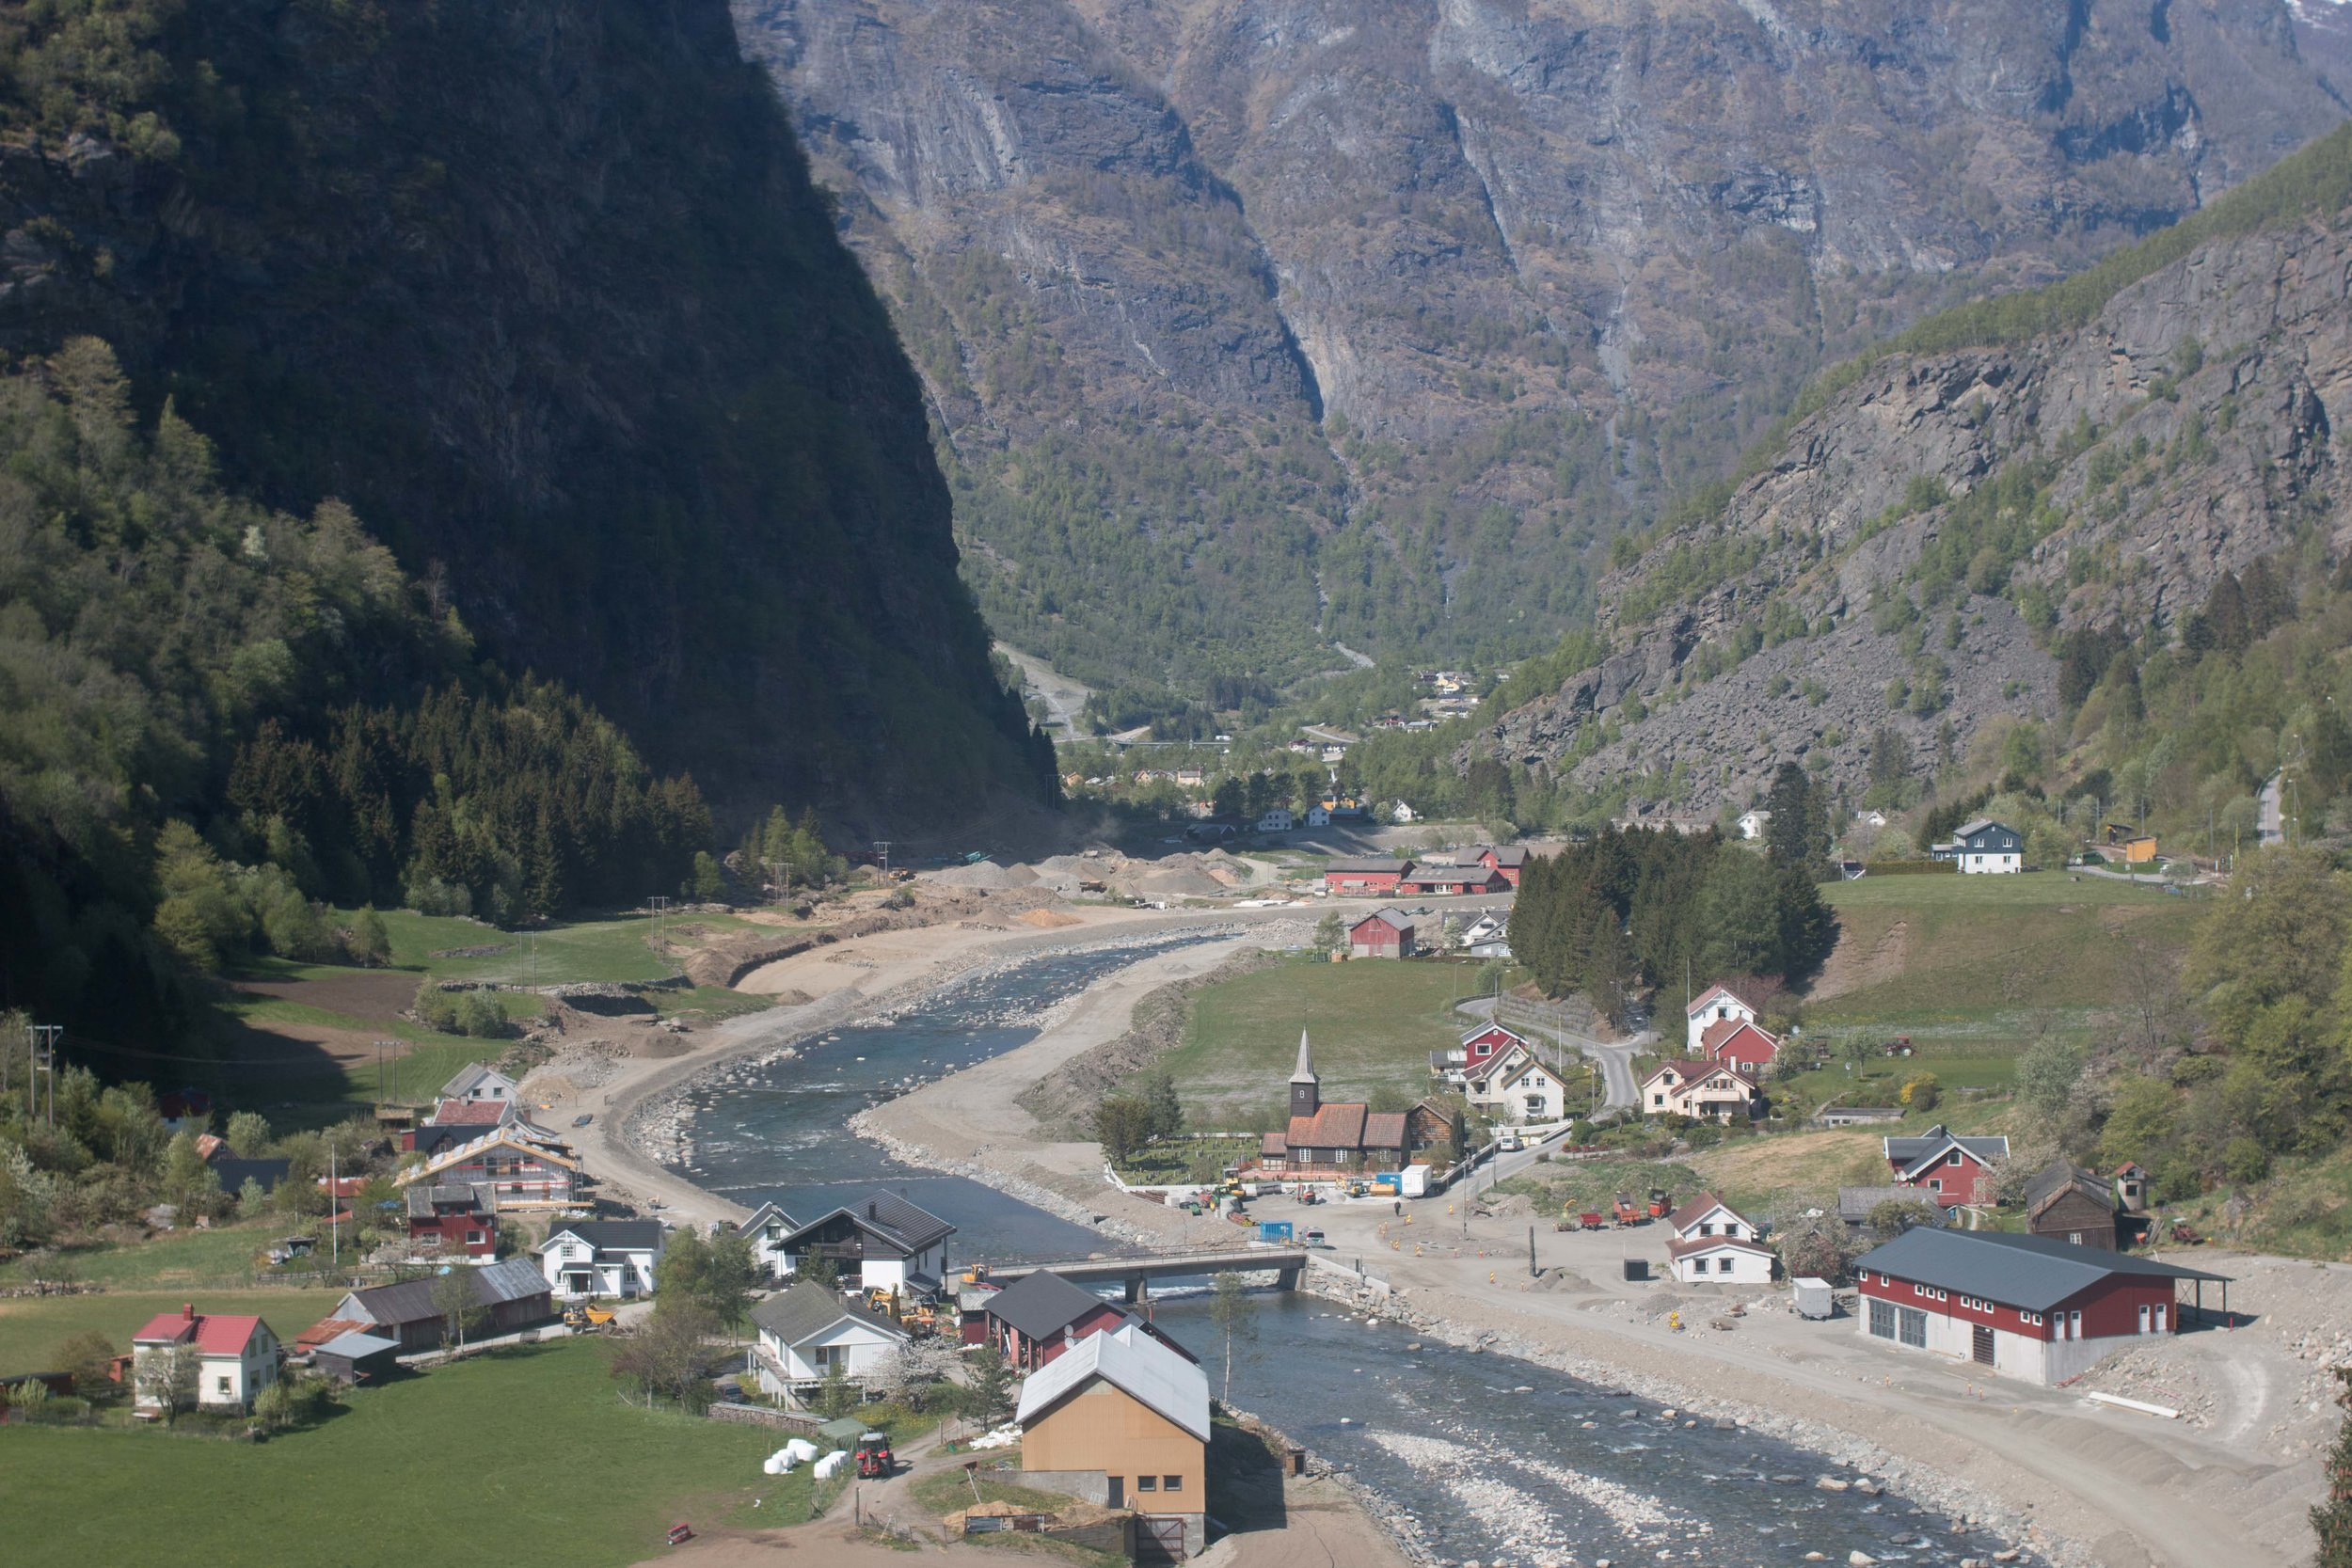 View of the Flam Valley from the train